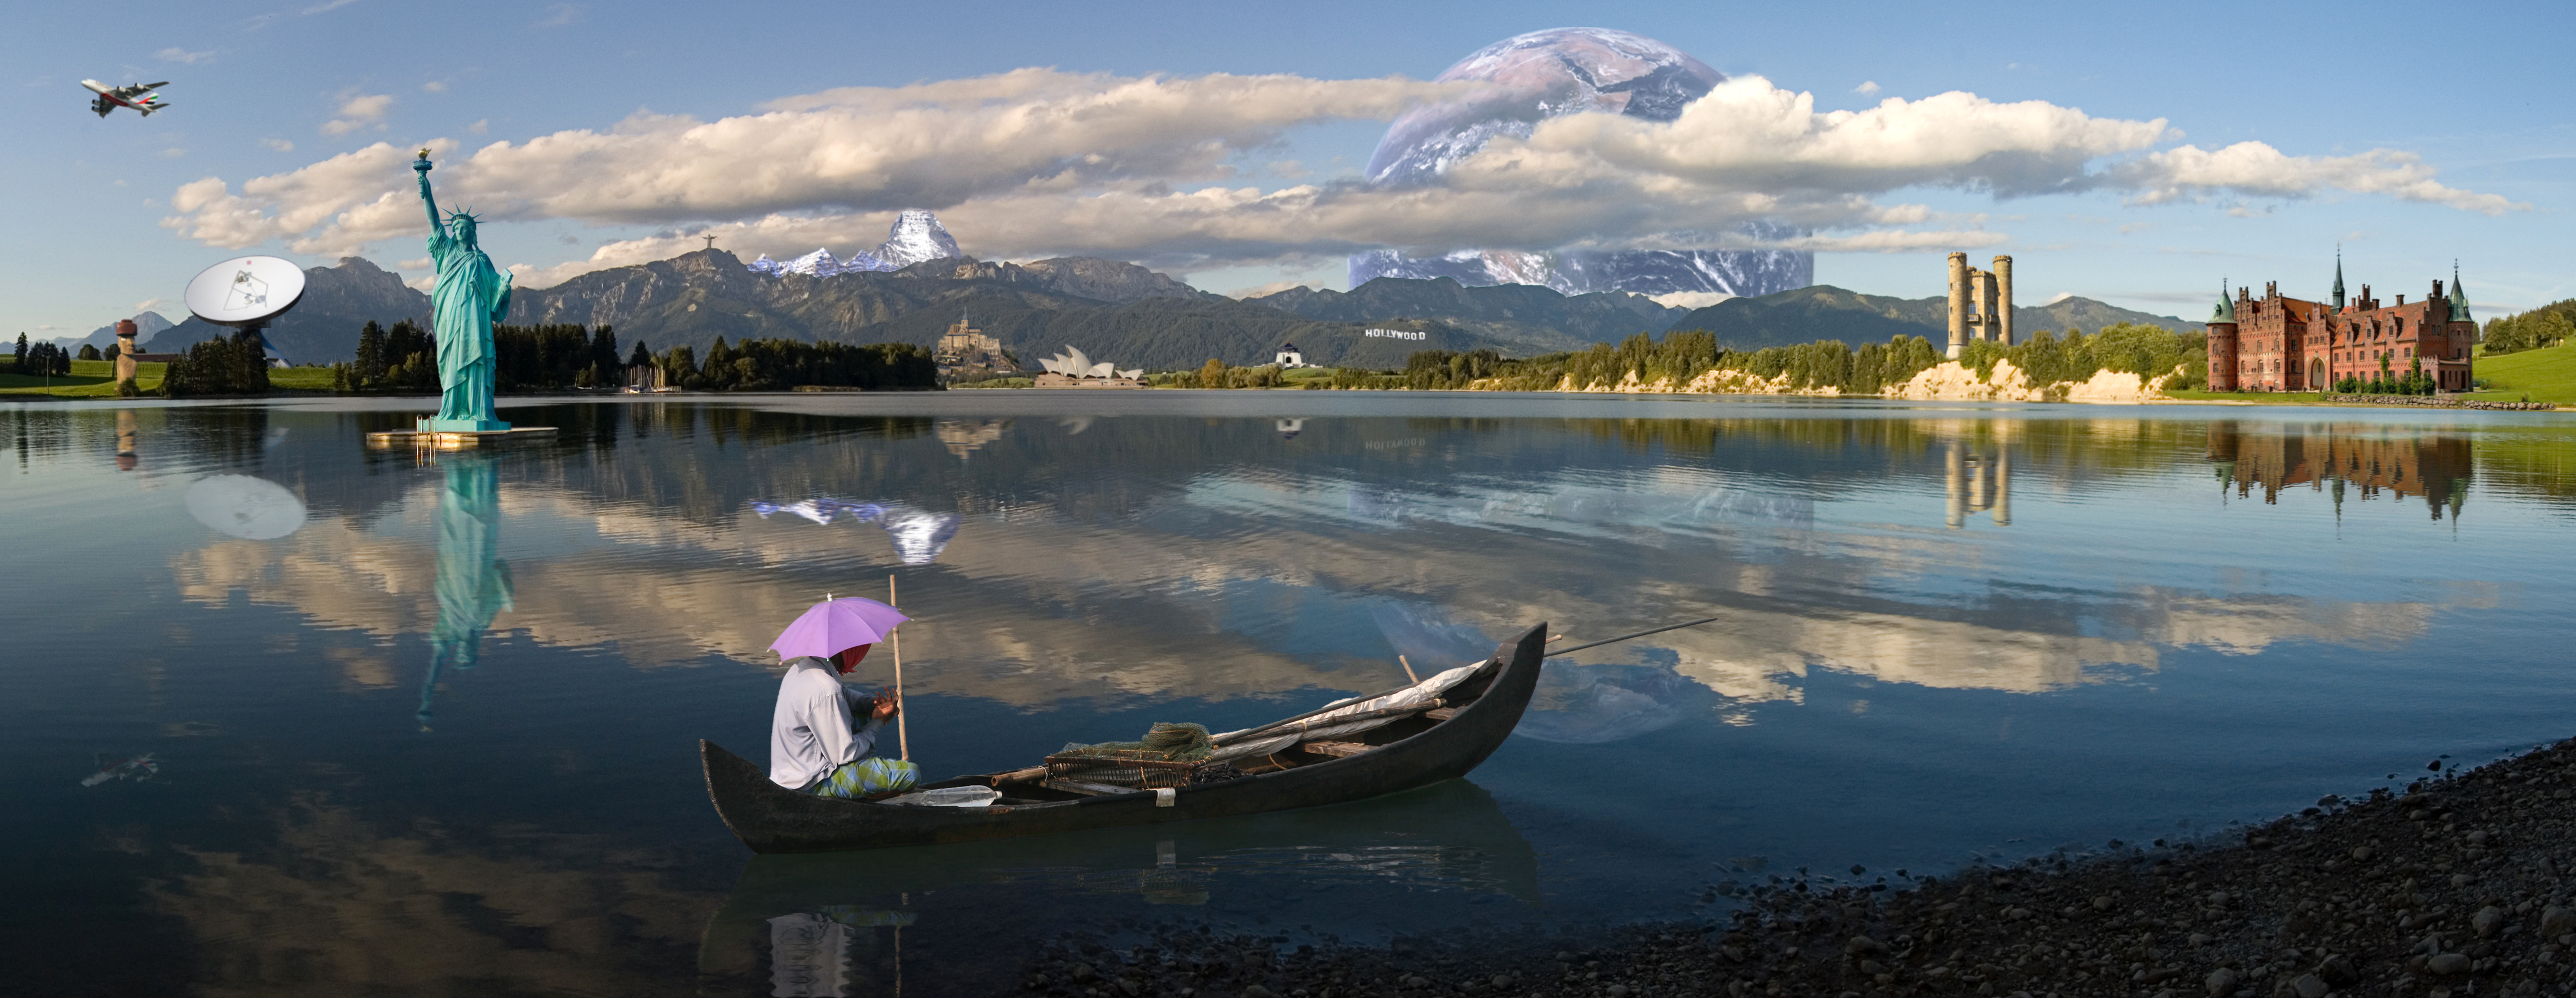 Photomontage (Forggensee Panorama) -2.jpg